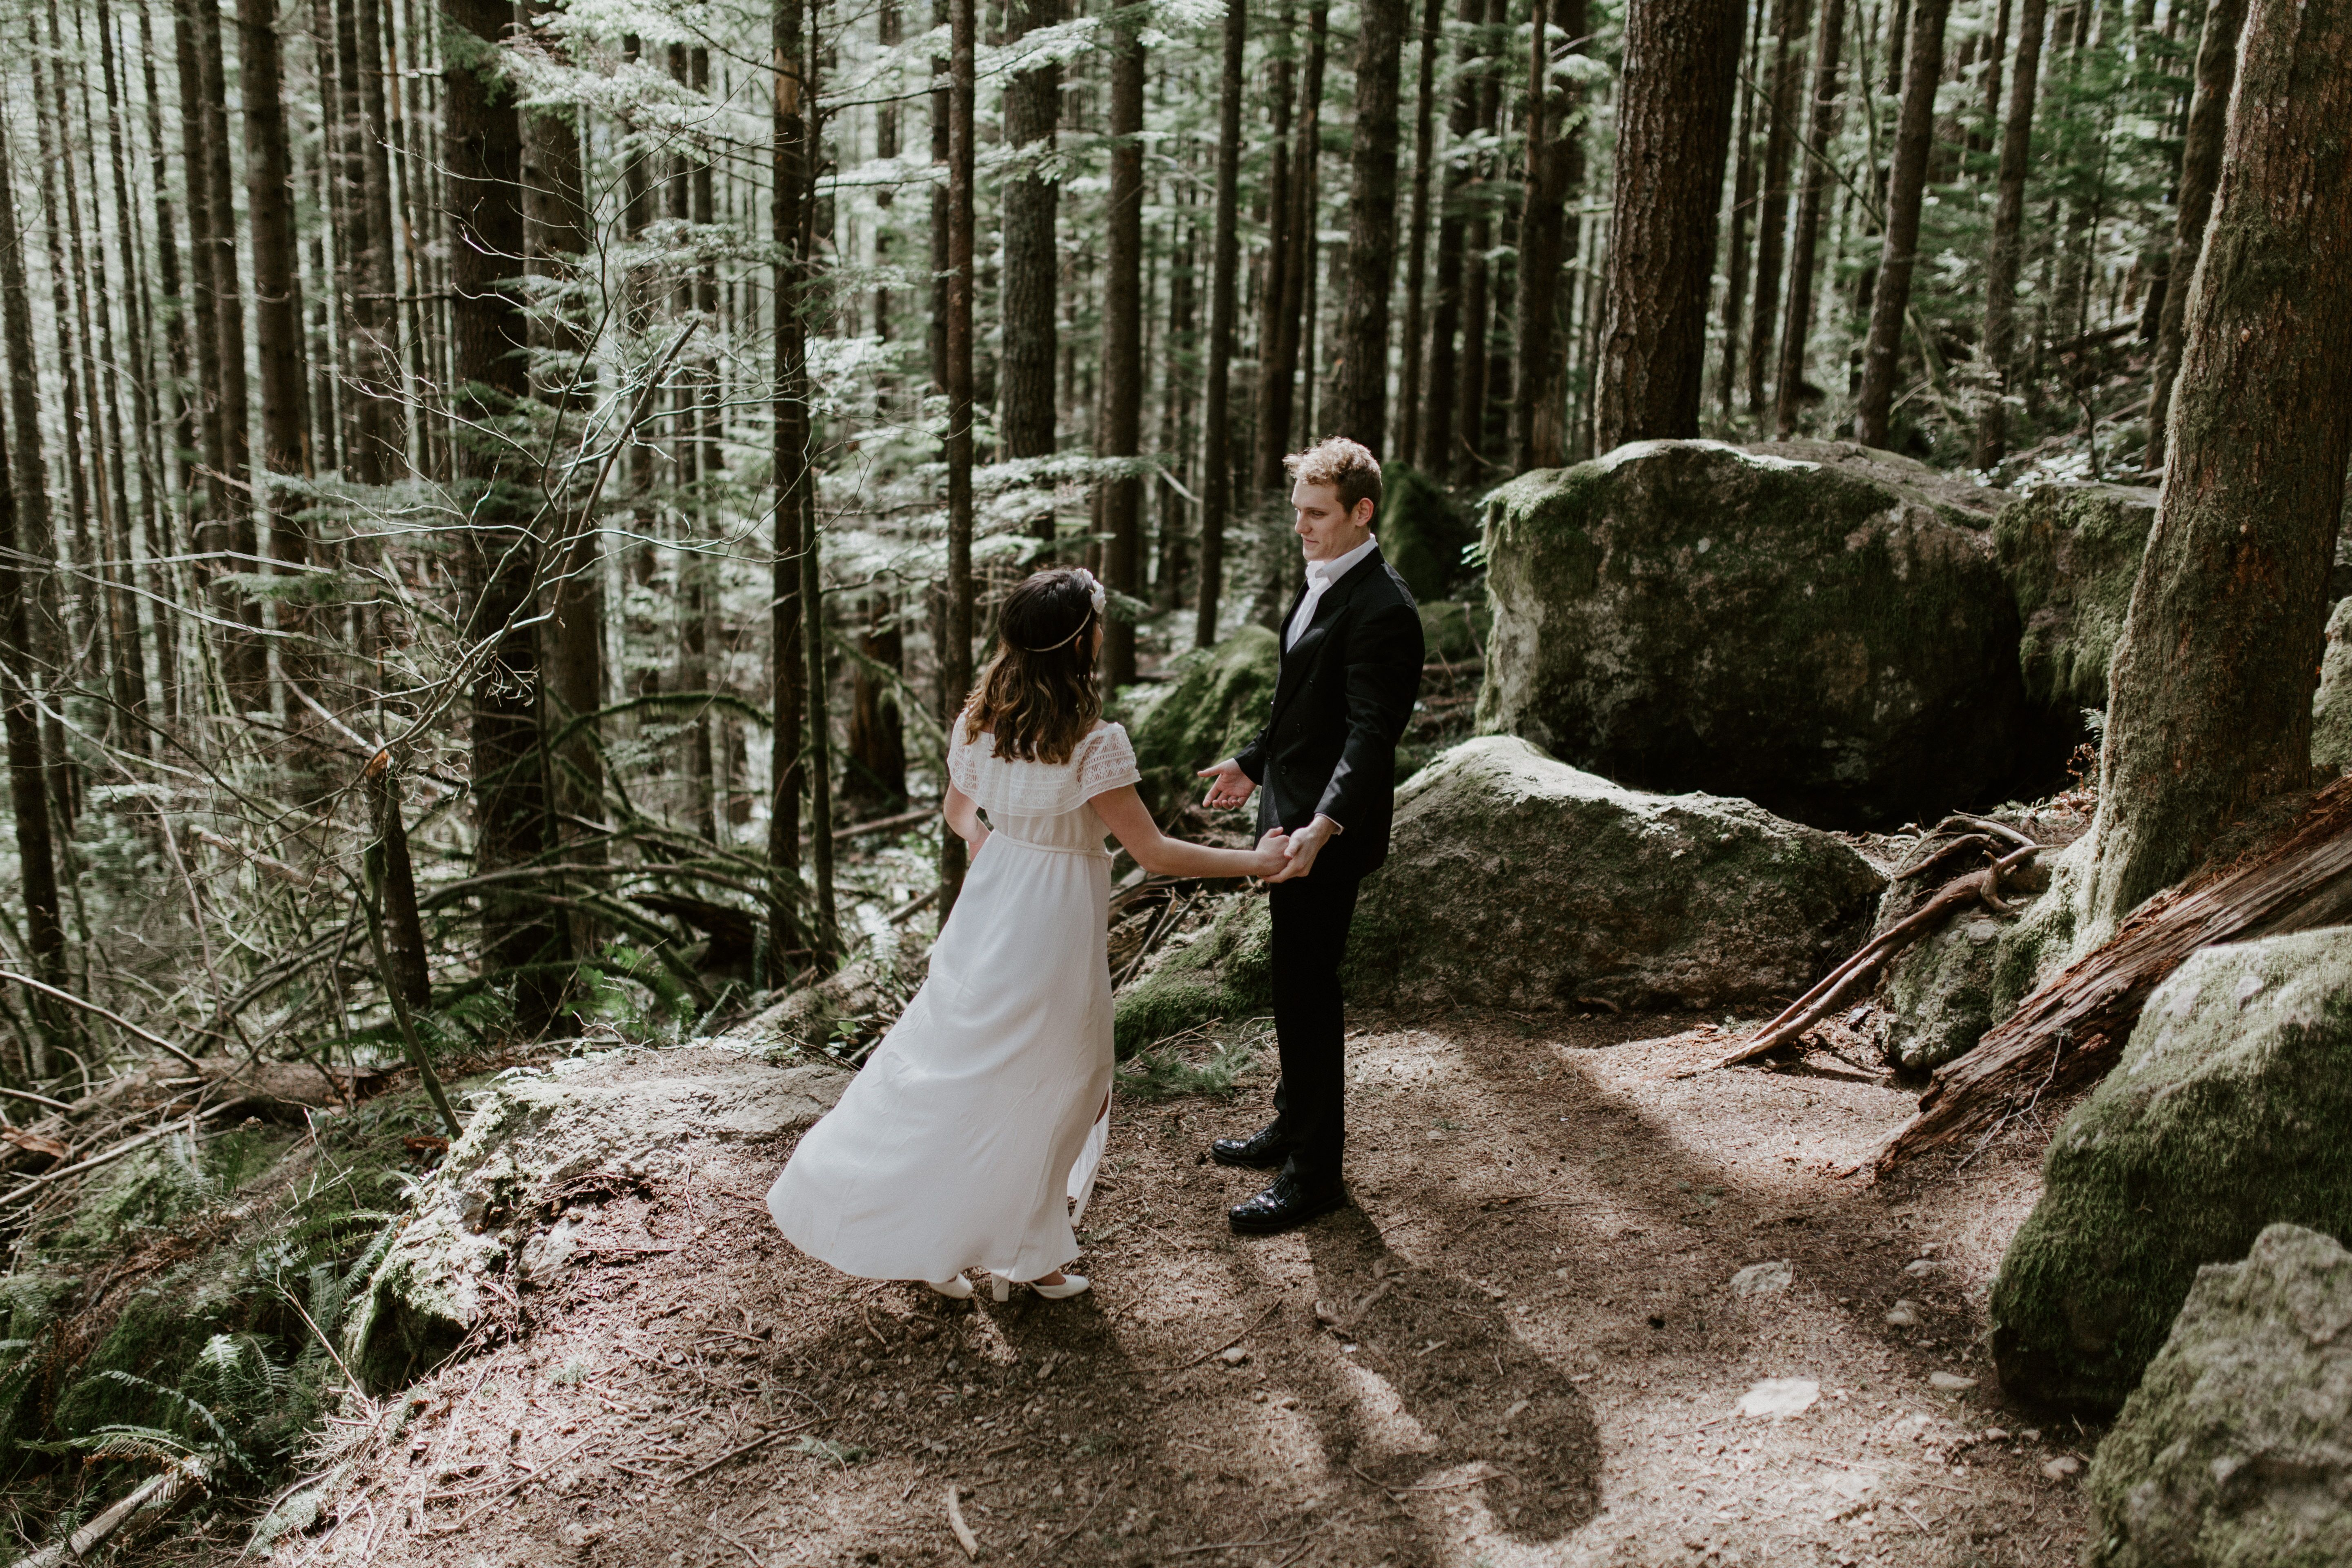 Michael and Winnifred dance near the trees on the trail to Rattlesnake Ledge. Elopement adventure shoot at Rattlesnake Lake, Washington.